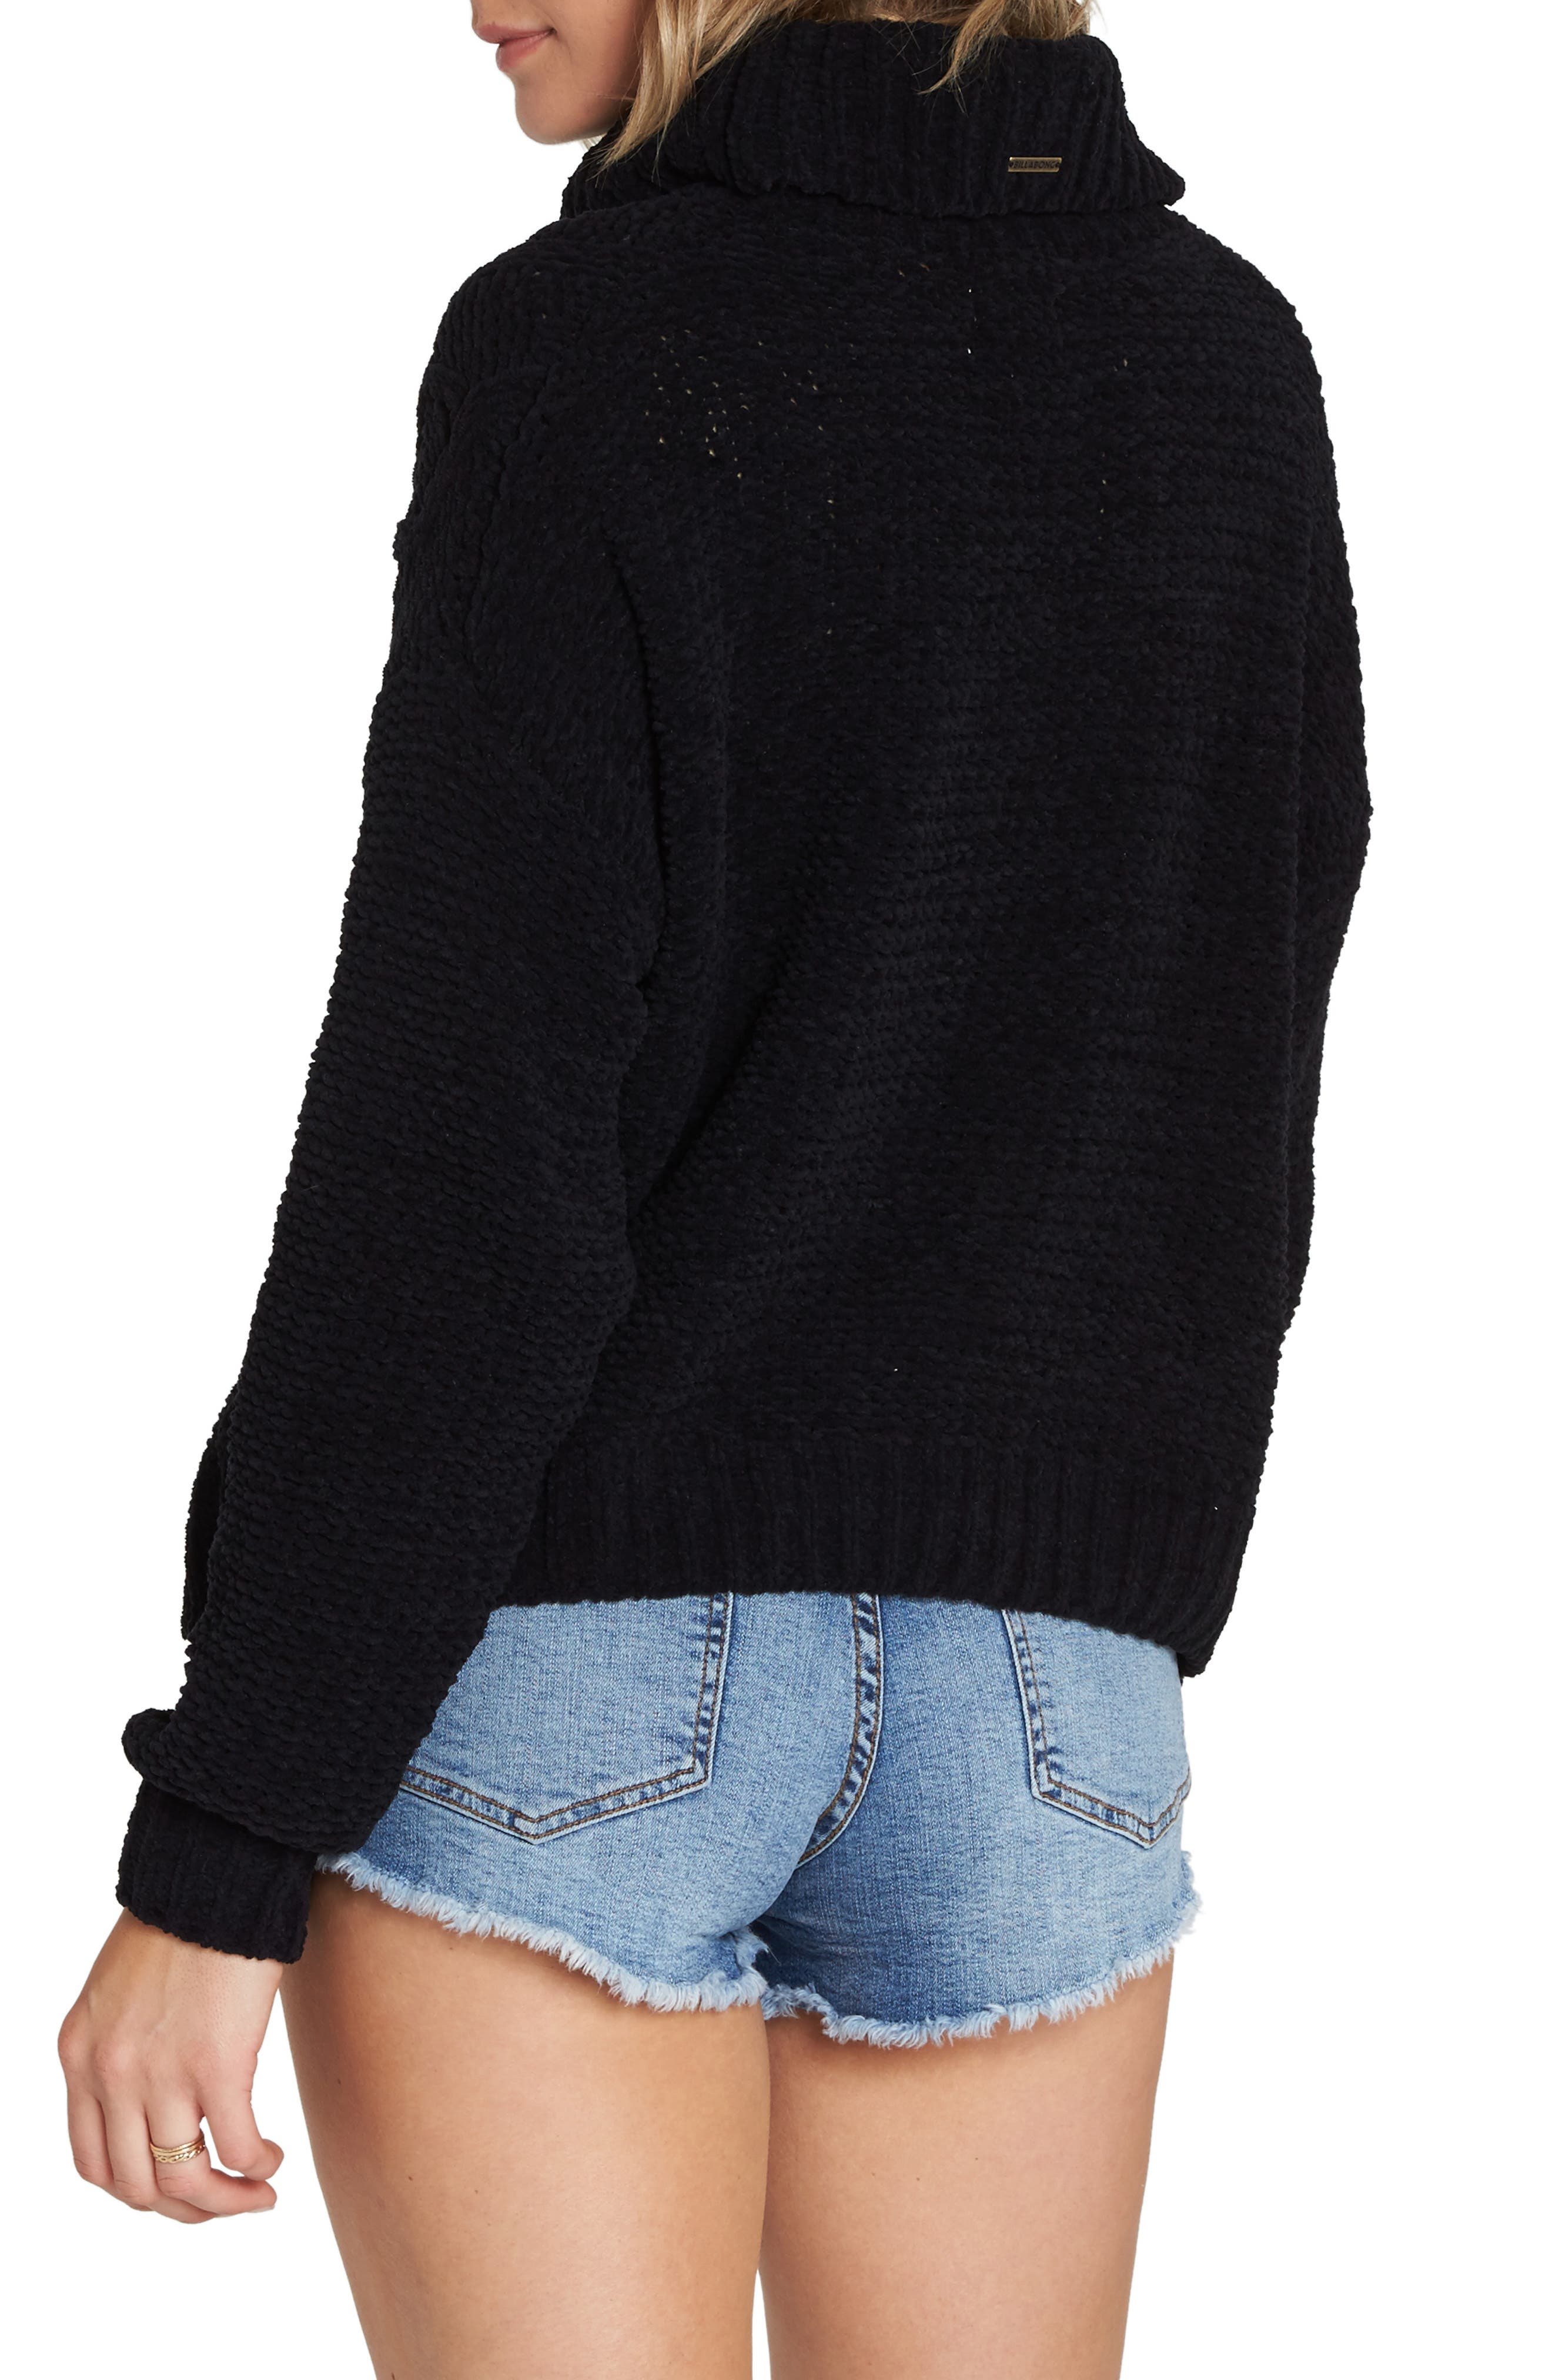 BILLABONG, Cable Knit Turtleneck Sweater, Alternate thumbnail 2, color, 001